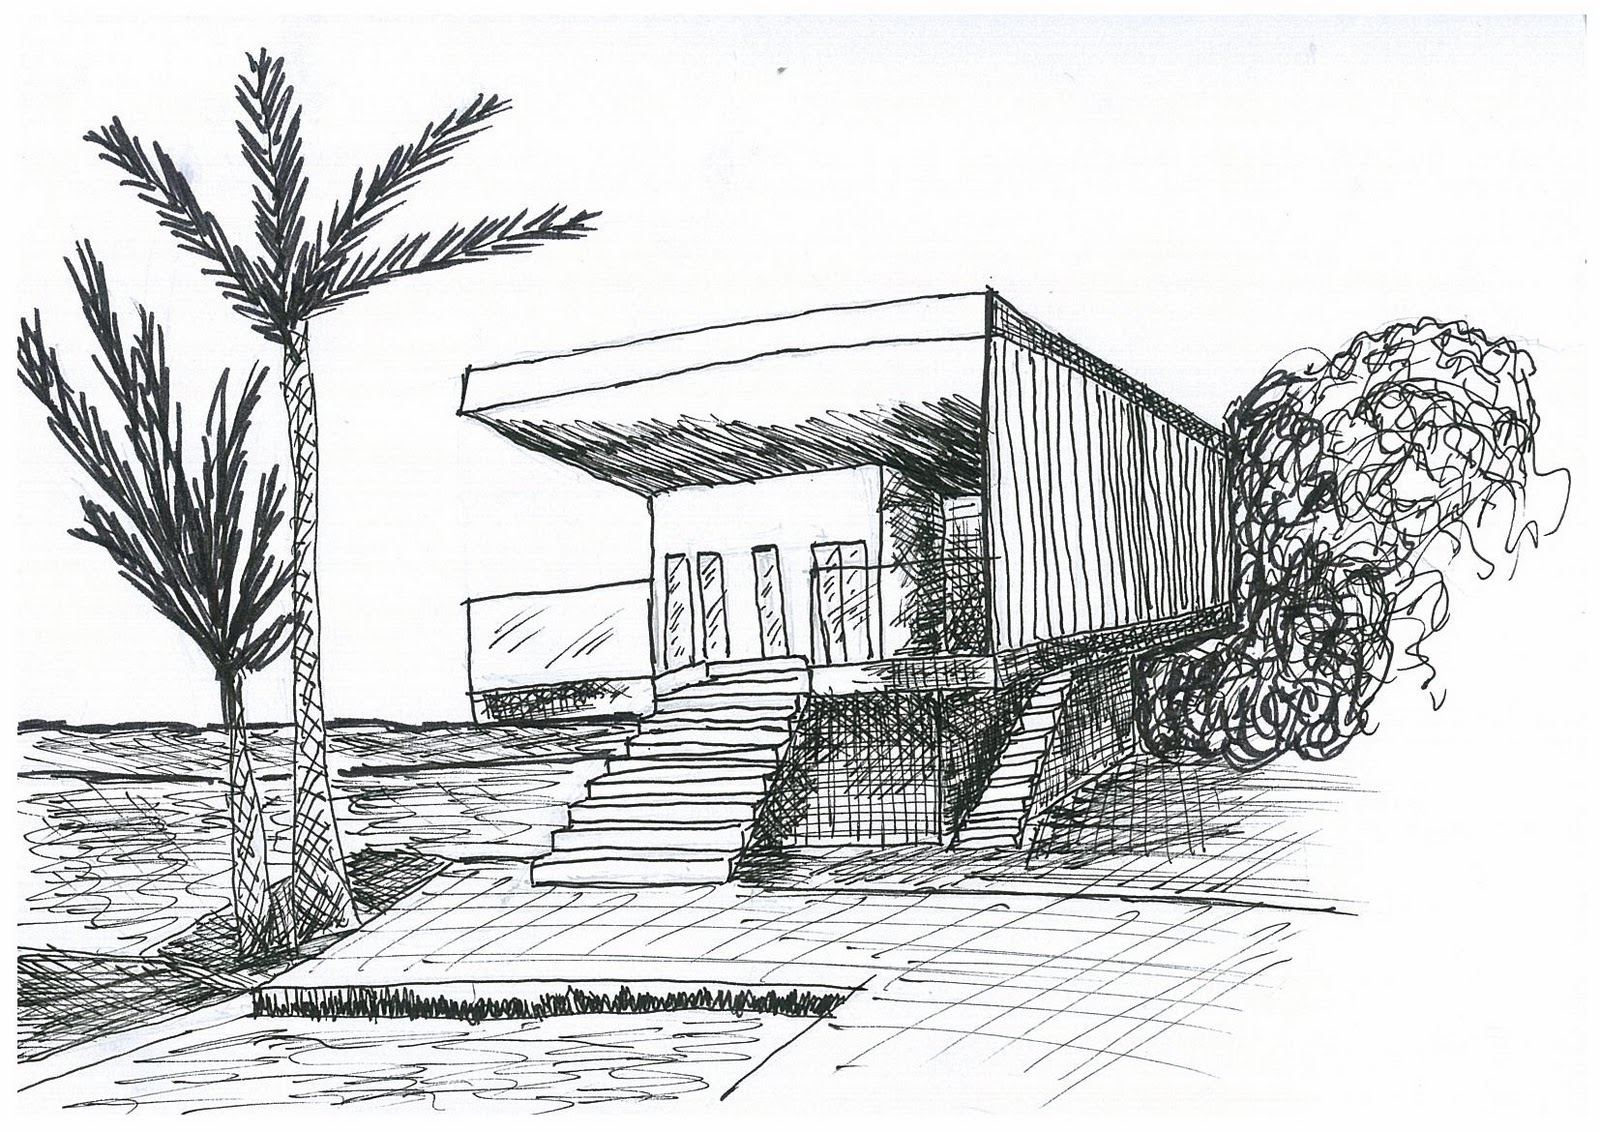 Harley S Archi Assignment Life Sj18 Persepective Sketches